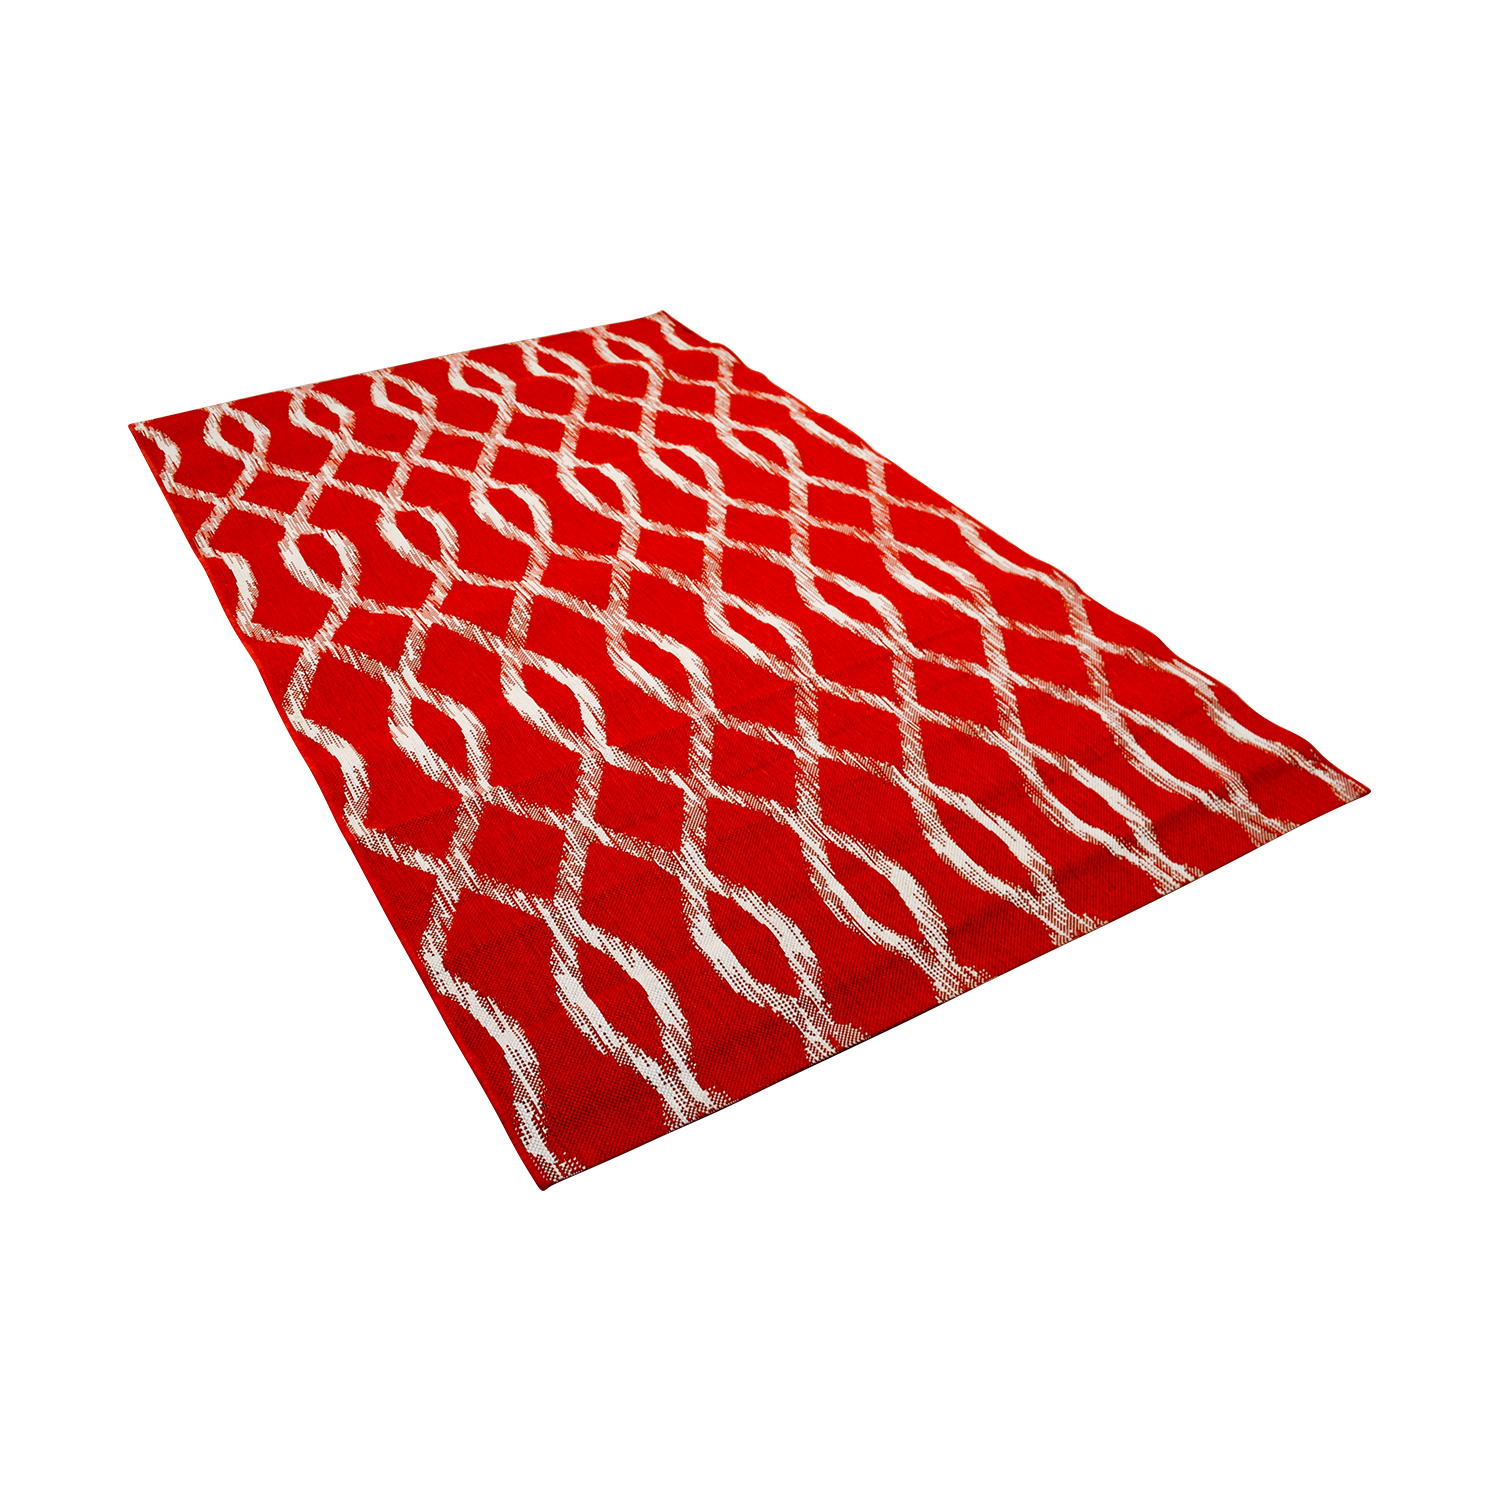 Crate & Barrel Crate & Barrel Indoor and Outdoor Red and White Rug